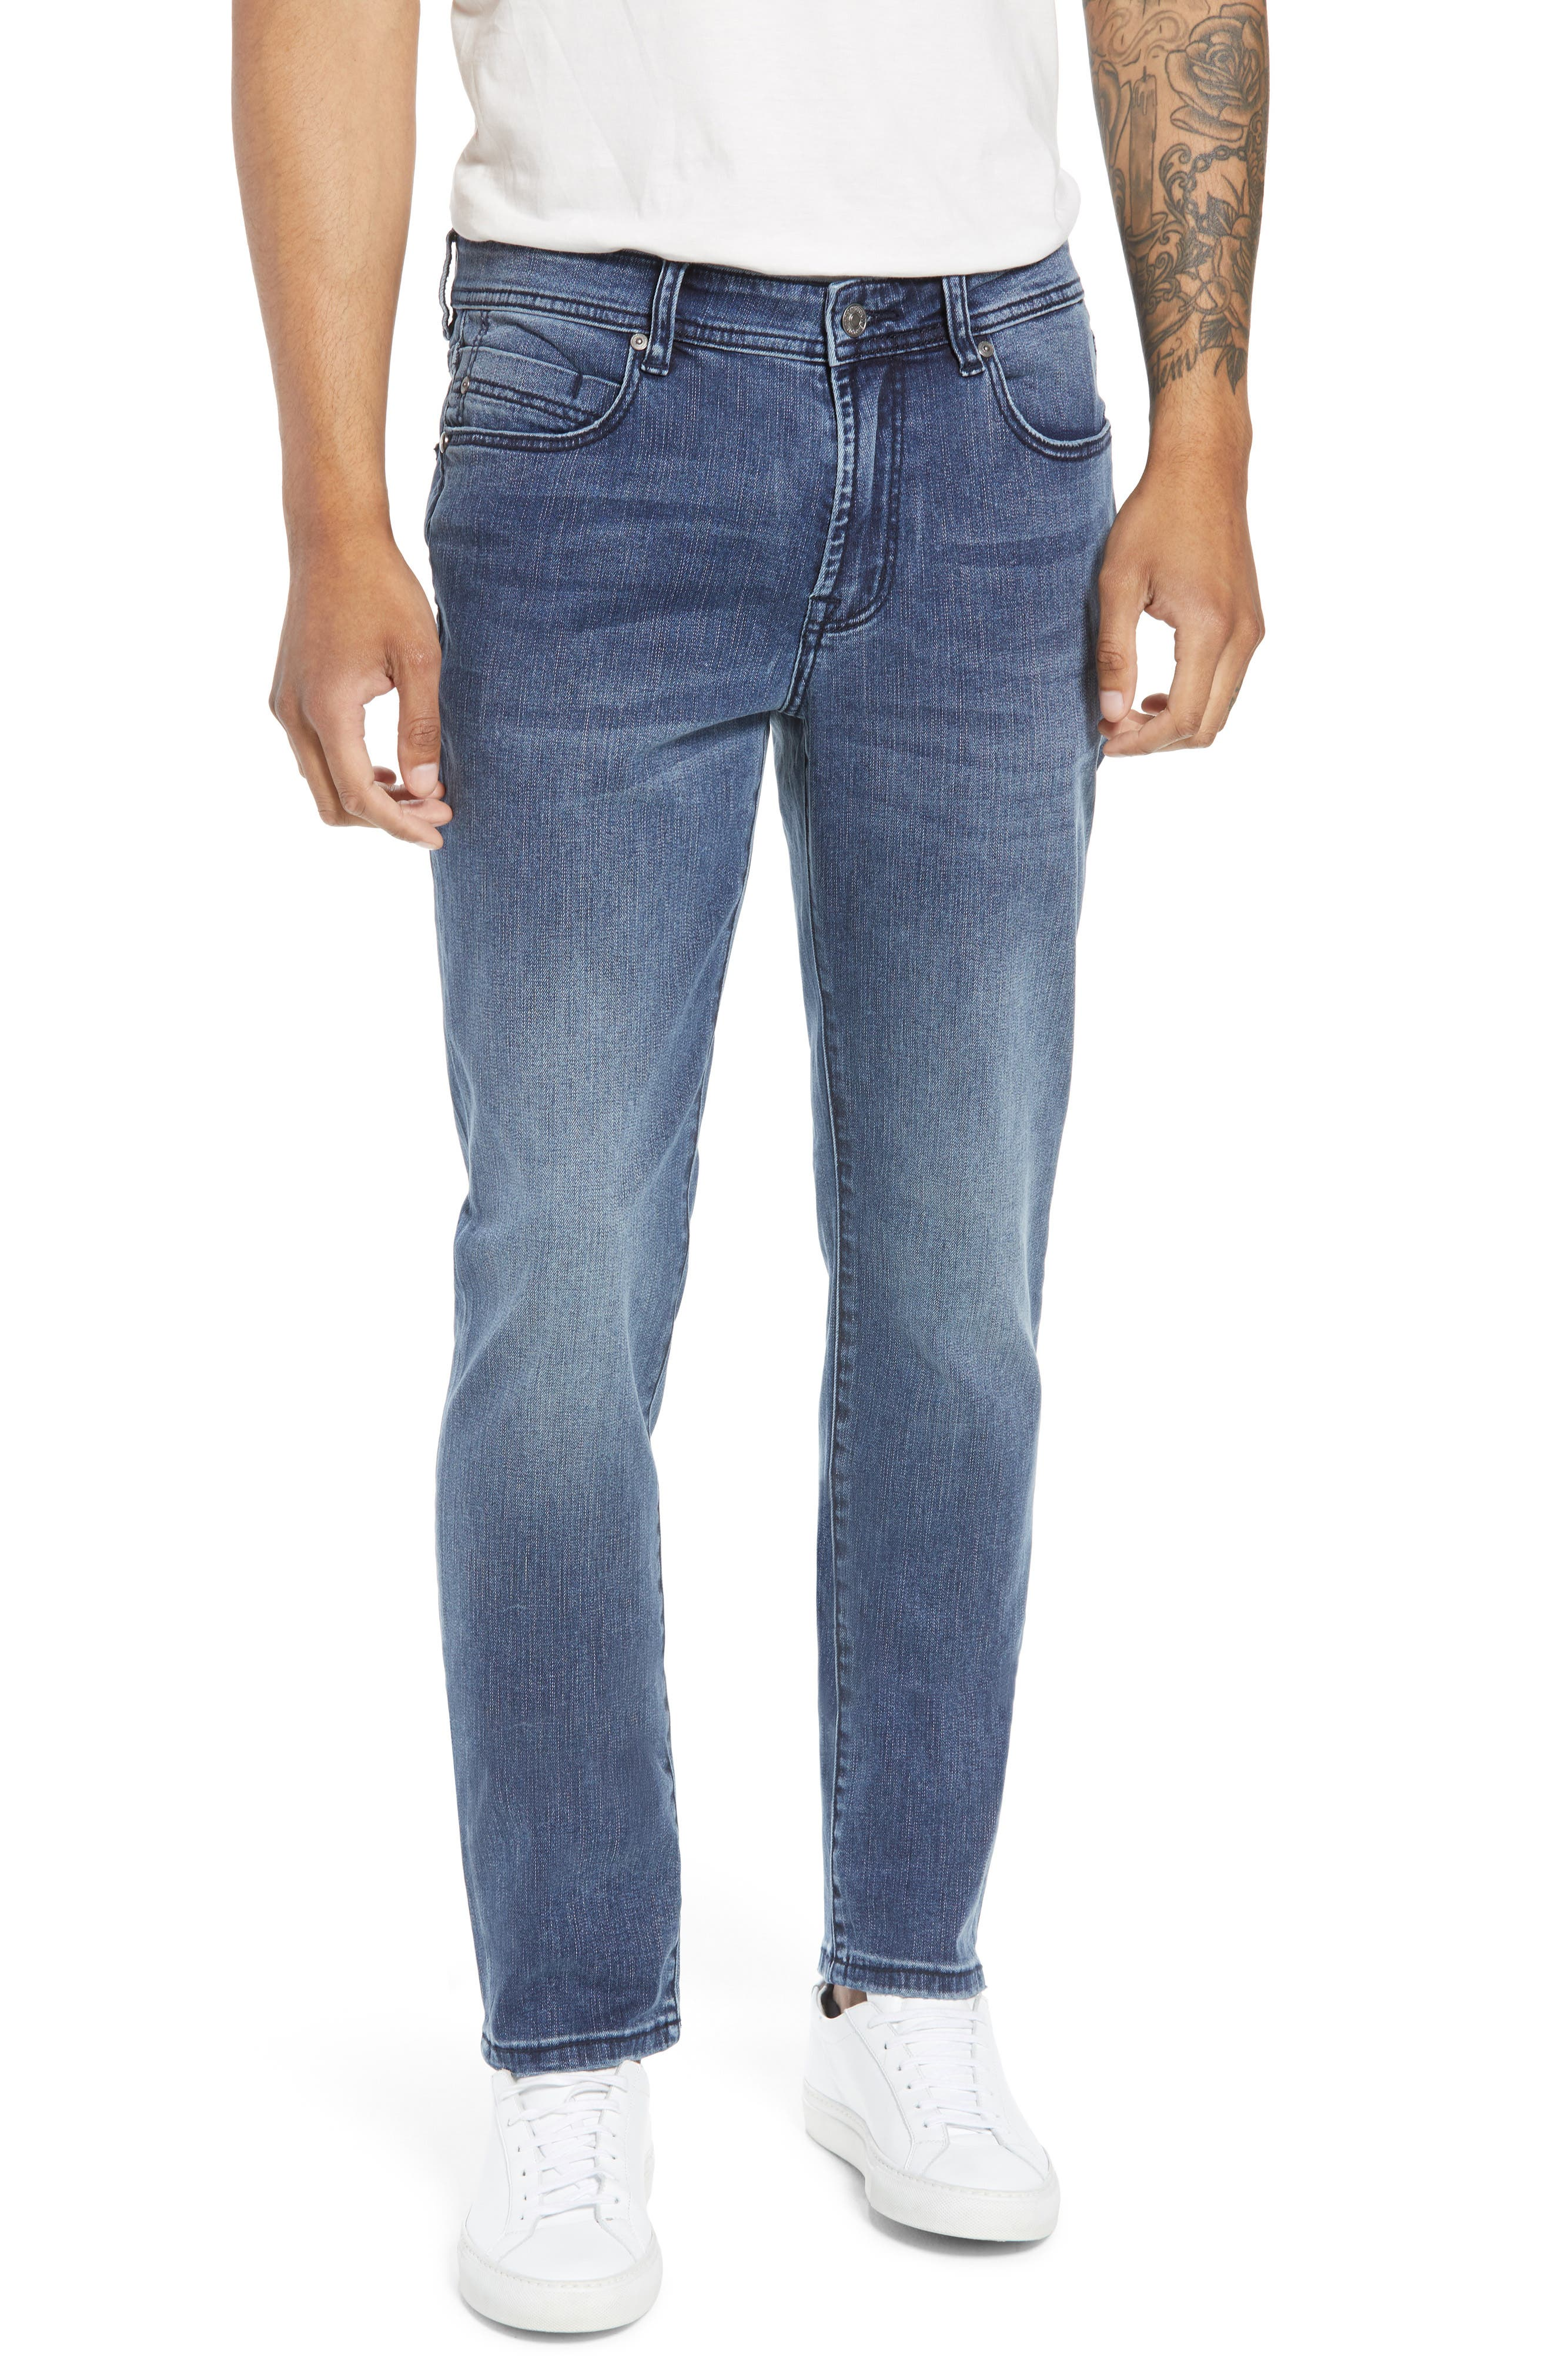 Jeans Co. Slim Straight Leg Jeans,                             Main thumbnail 1, color,                             403